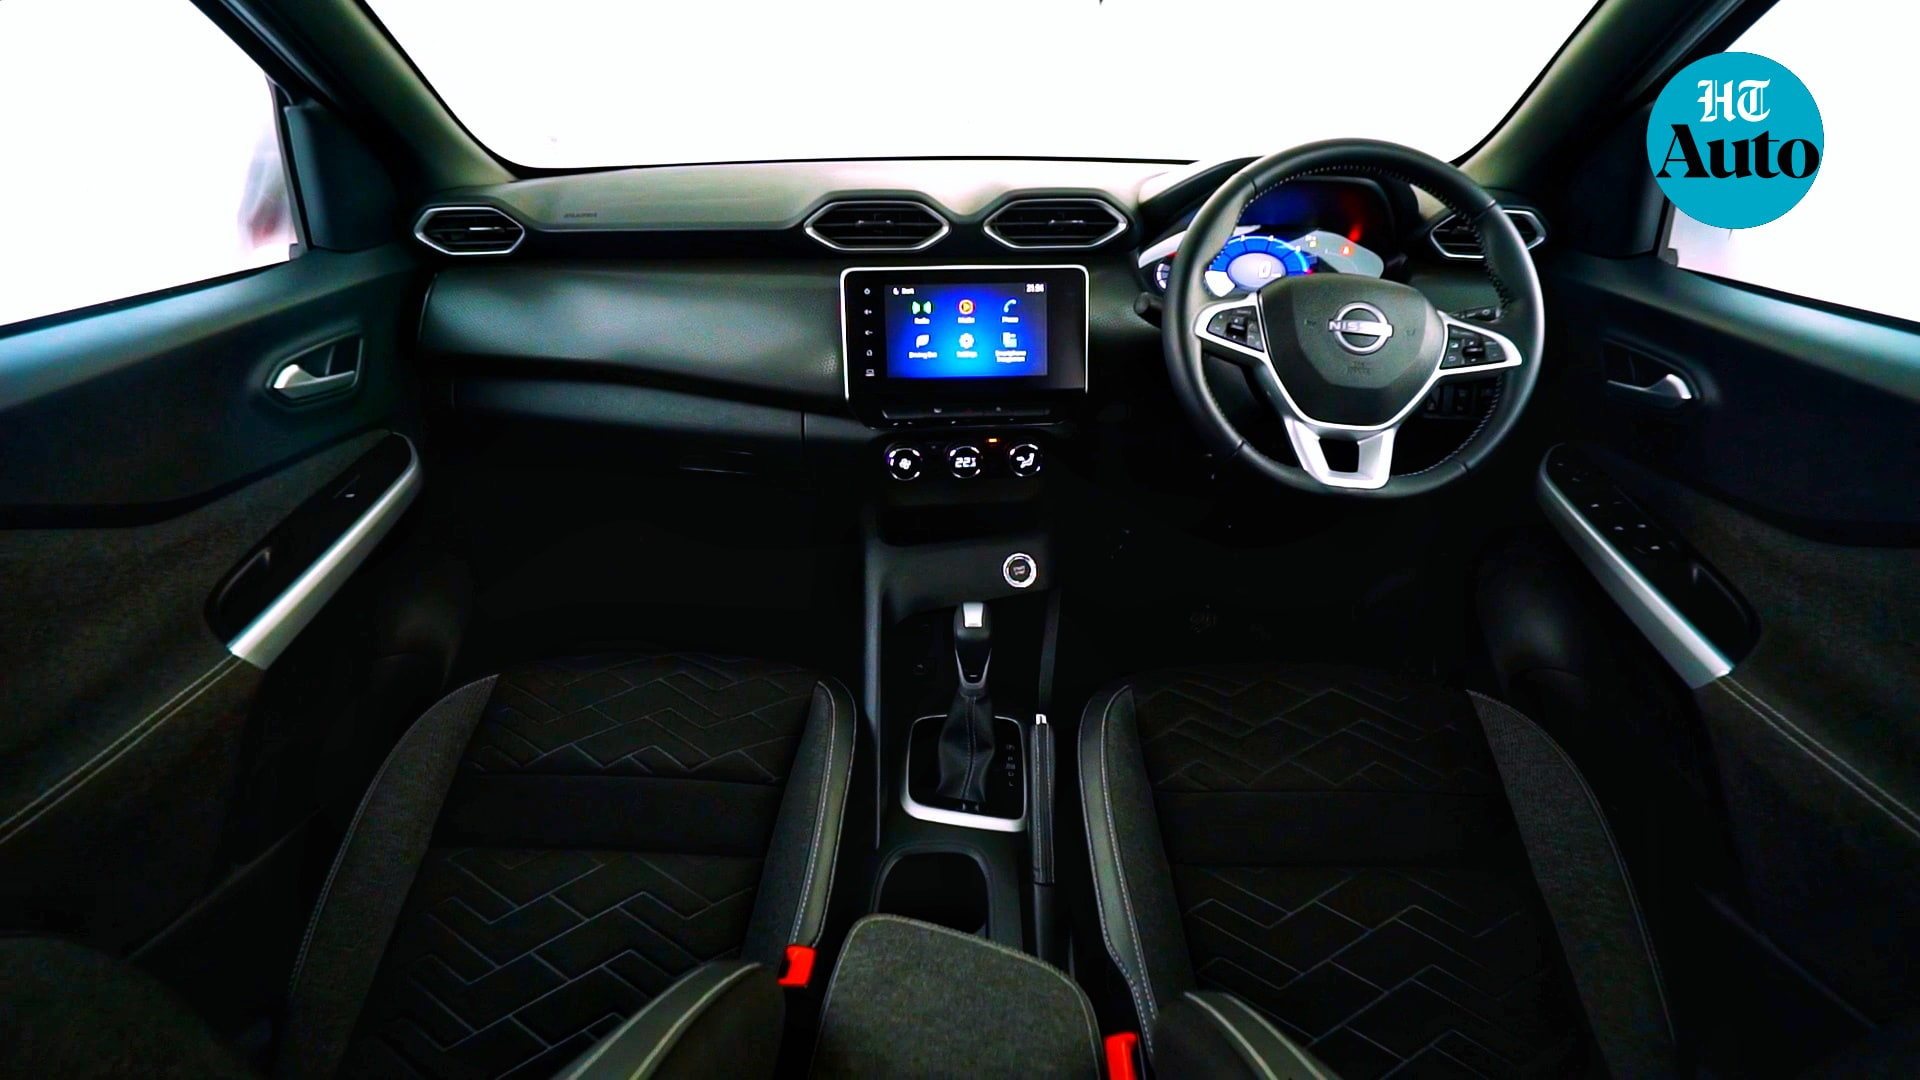 Step inside the Magnite and there's an eight-inch infotainment screen that offers wireless Android Auto and Apple CarPlay. This also puts out rear parking feed as well as a side camera feed which may be helpful during parallel parking. There are six speakers inside the car. (HT Auto/Sabyasachi Dasgupta)